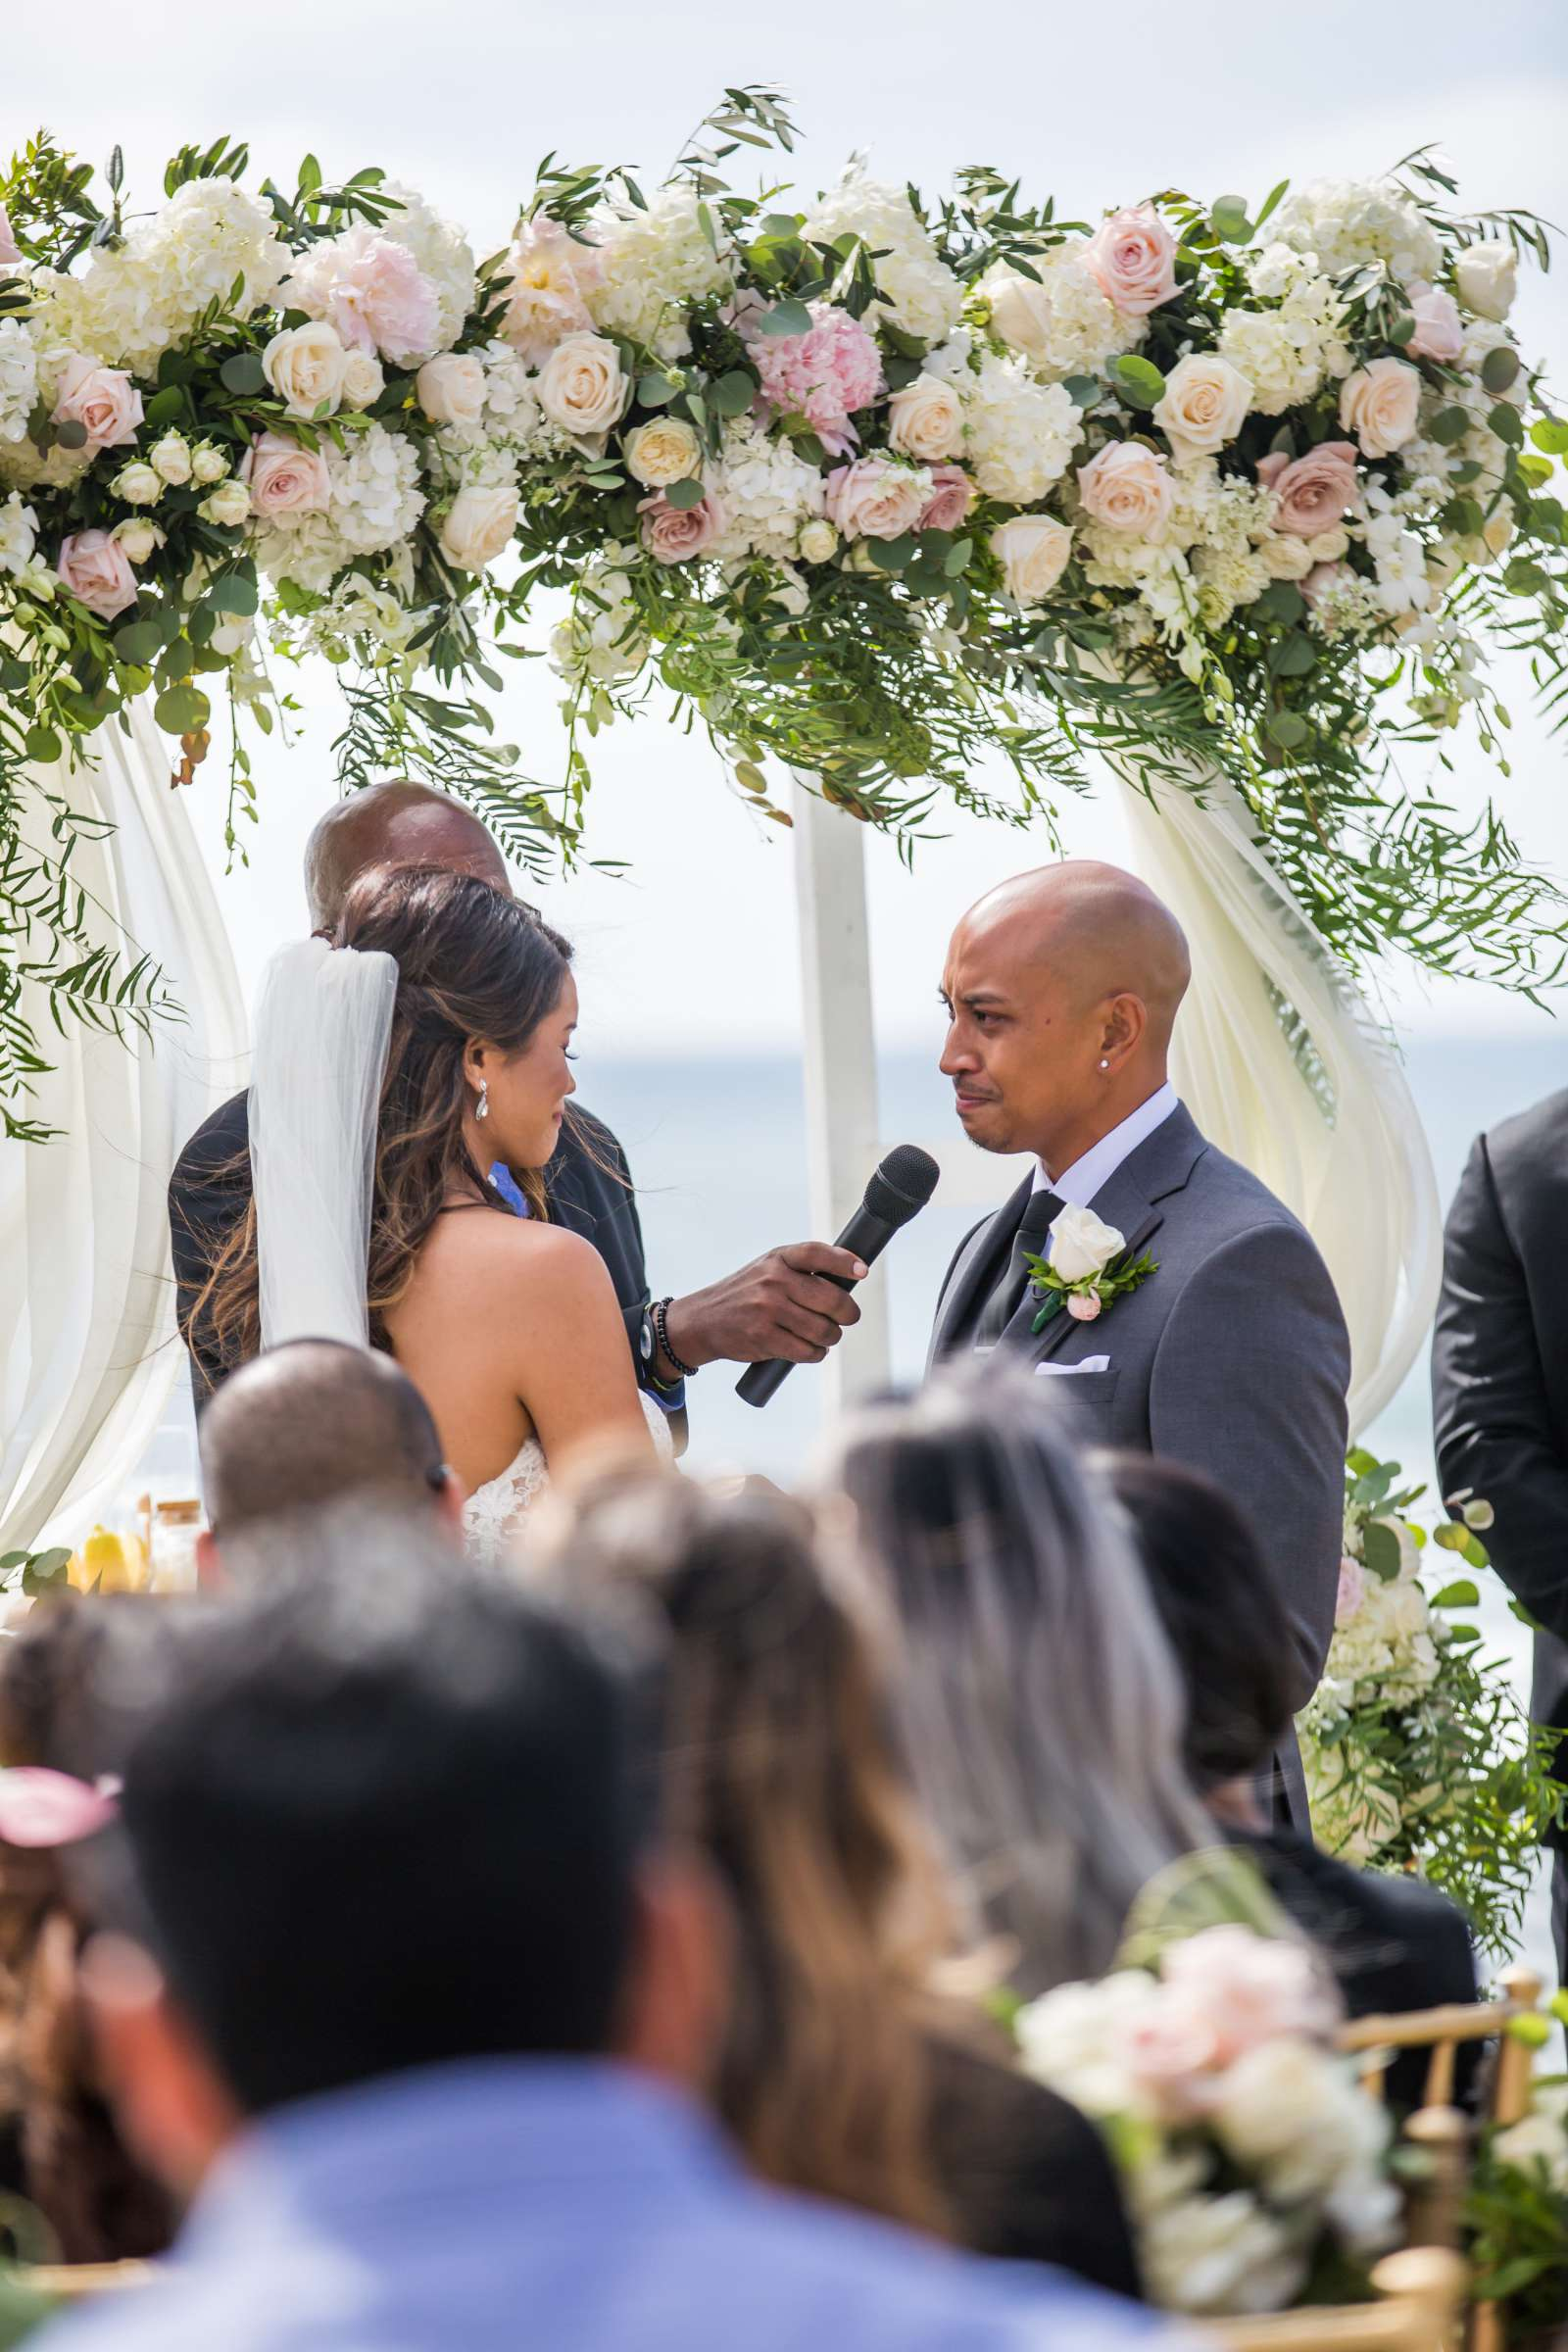 Scripps Seaside Forum Wedding coordinated by Lavish Weddings, Cindy and Justin Wedding Photo #381825 by True Photography